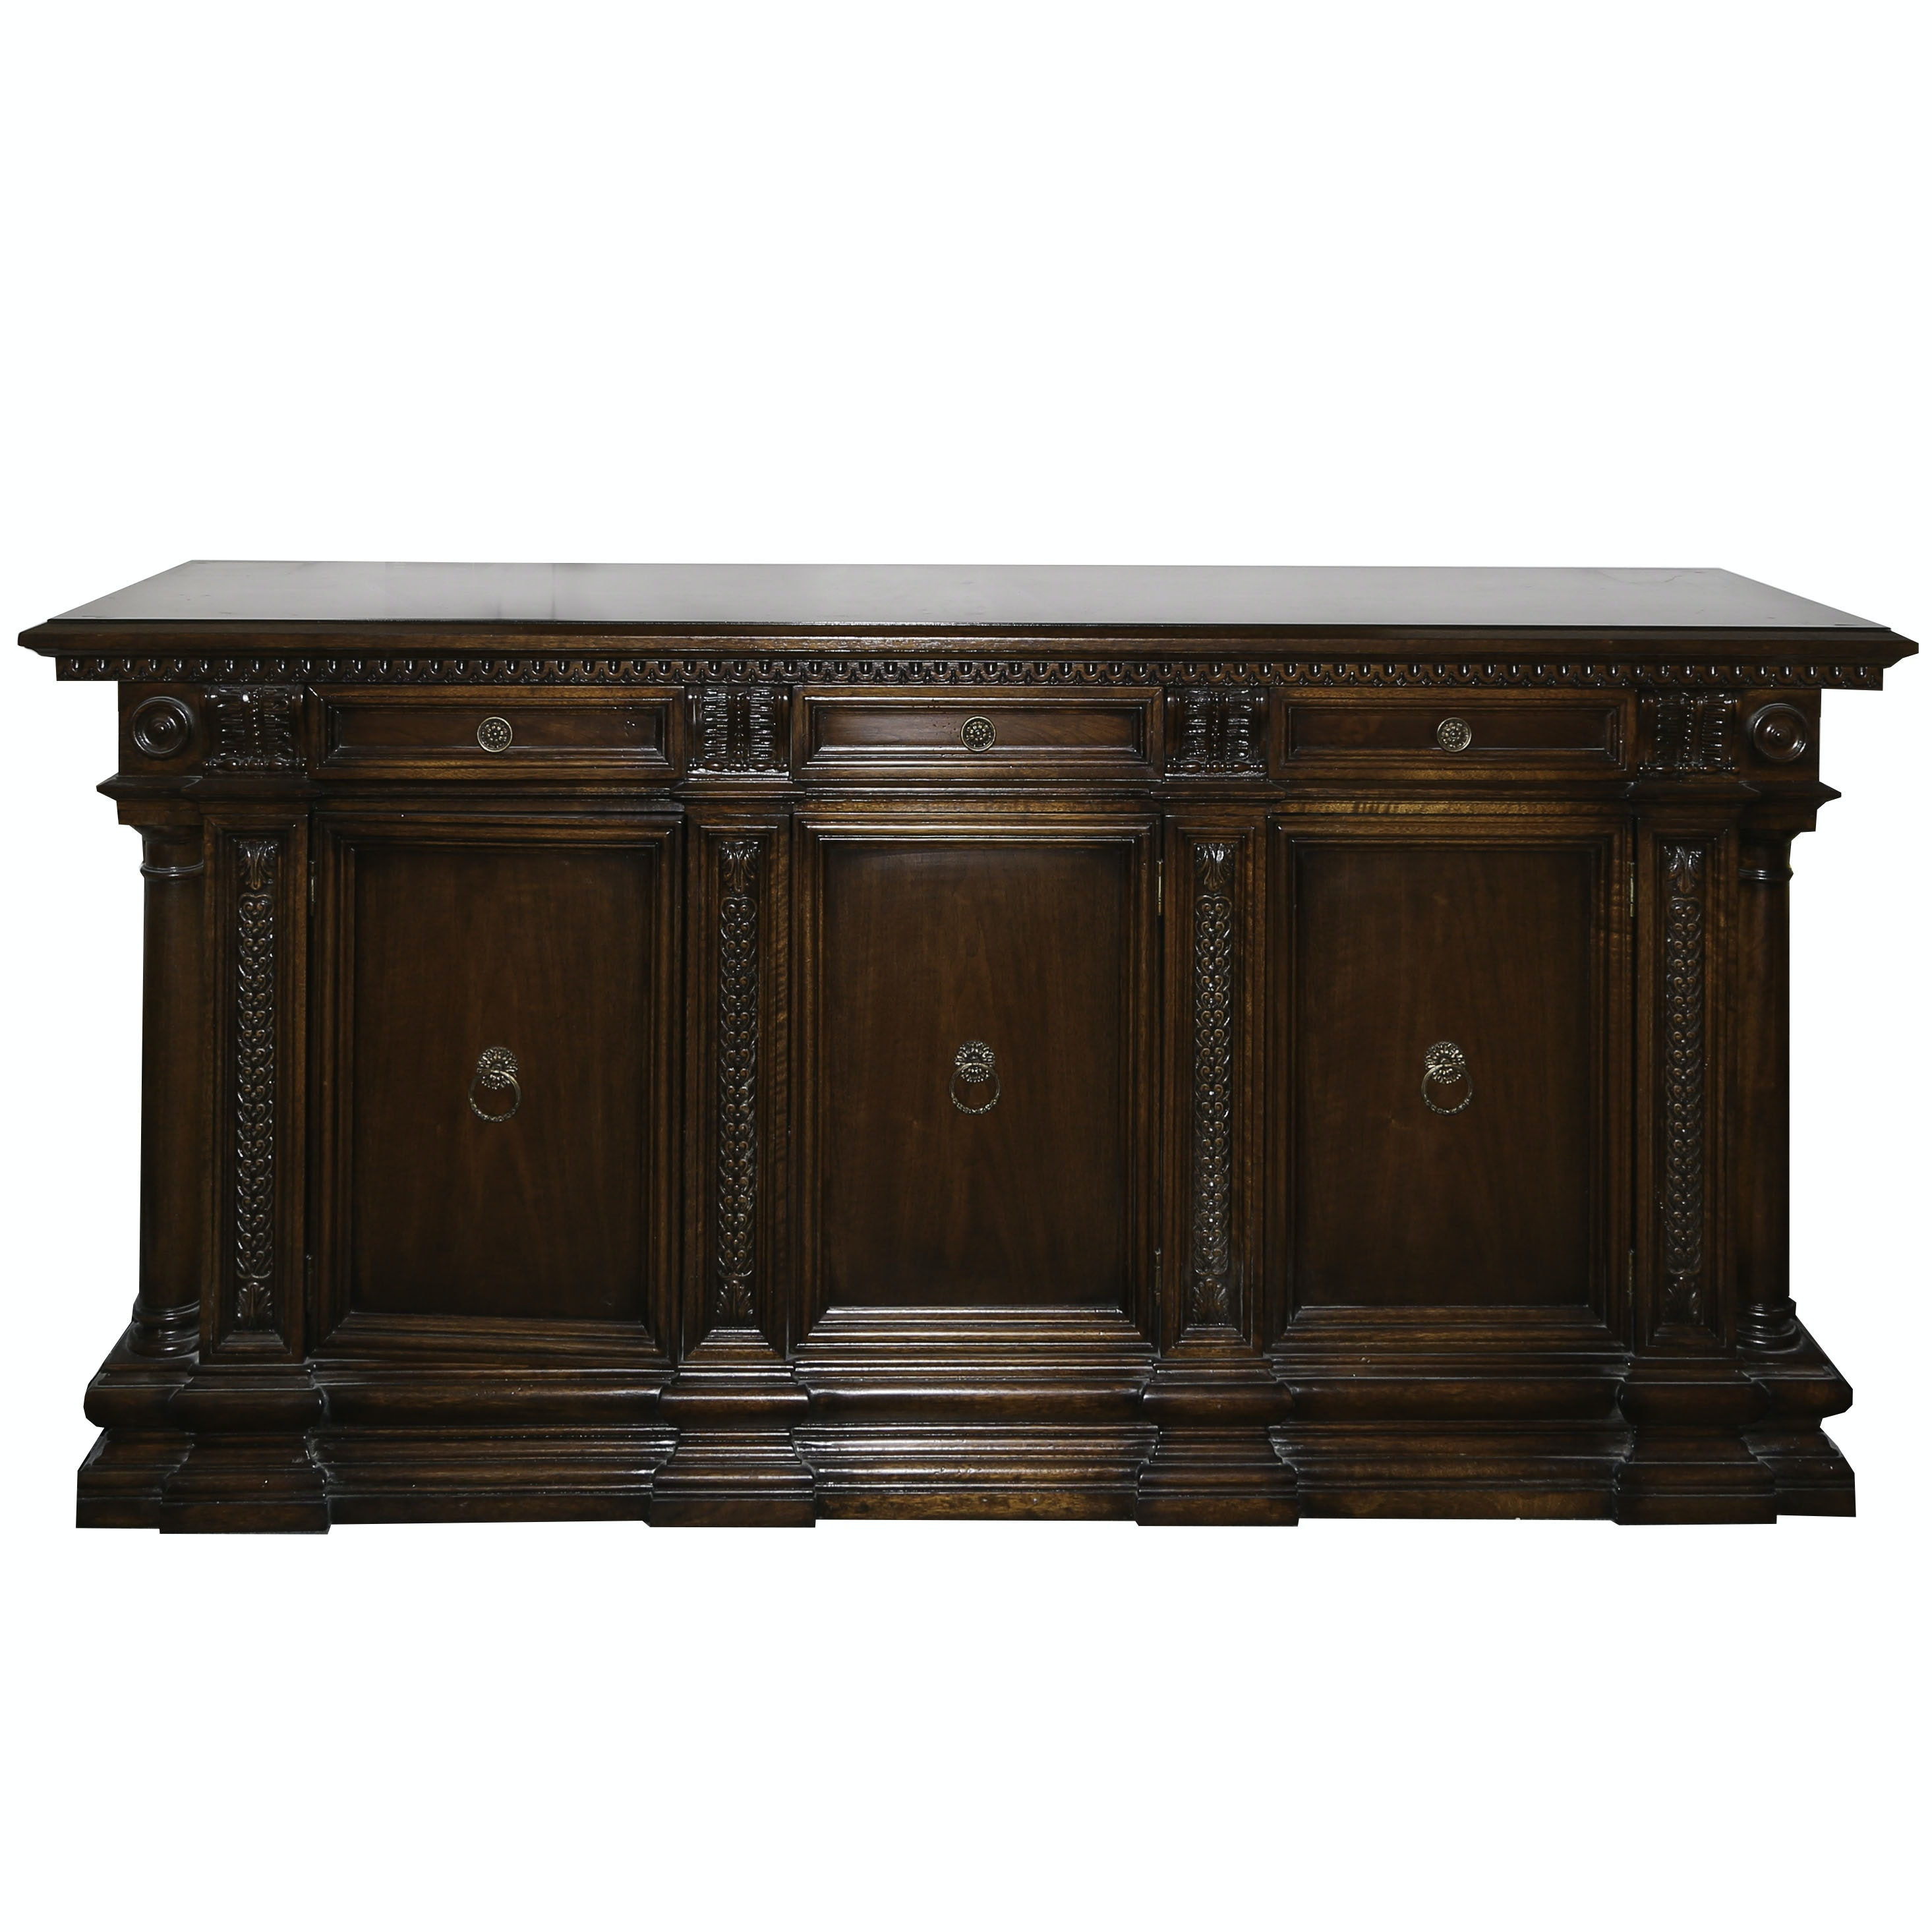 Neoclassical Style Mahogany Finish Wood Sideboard by Hickory Chair, 21st Century